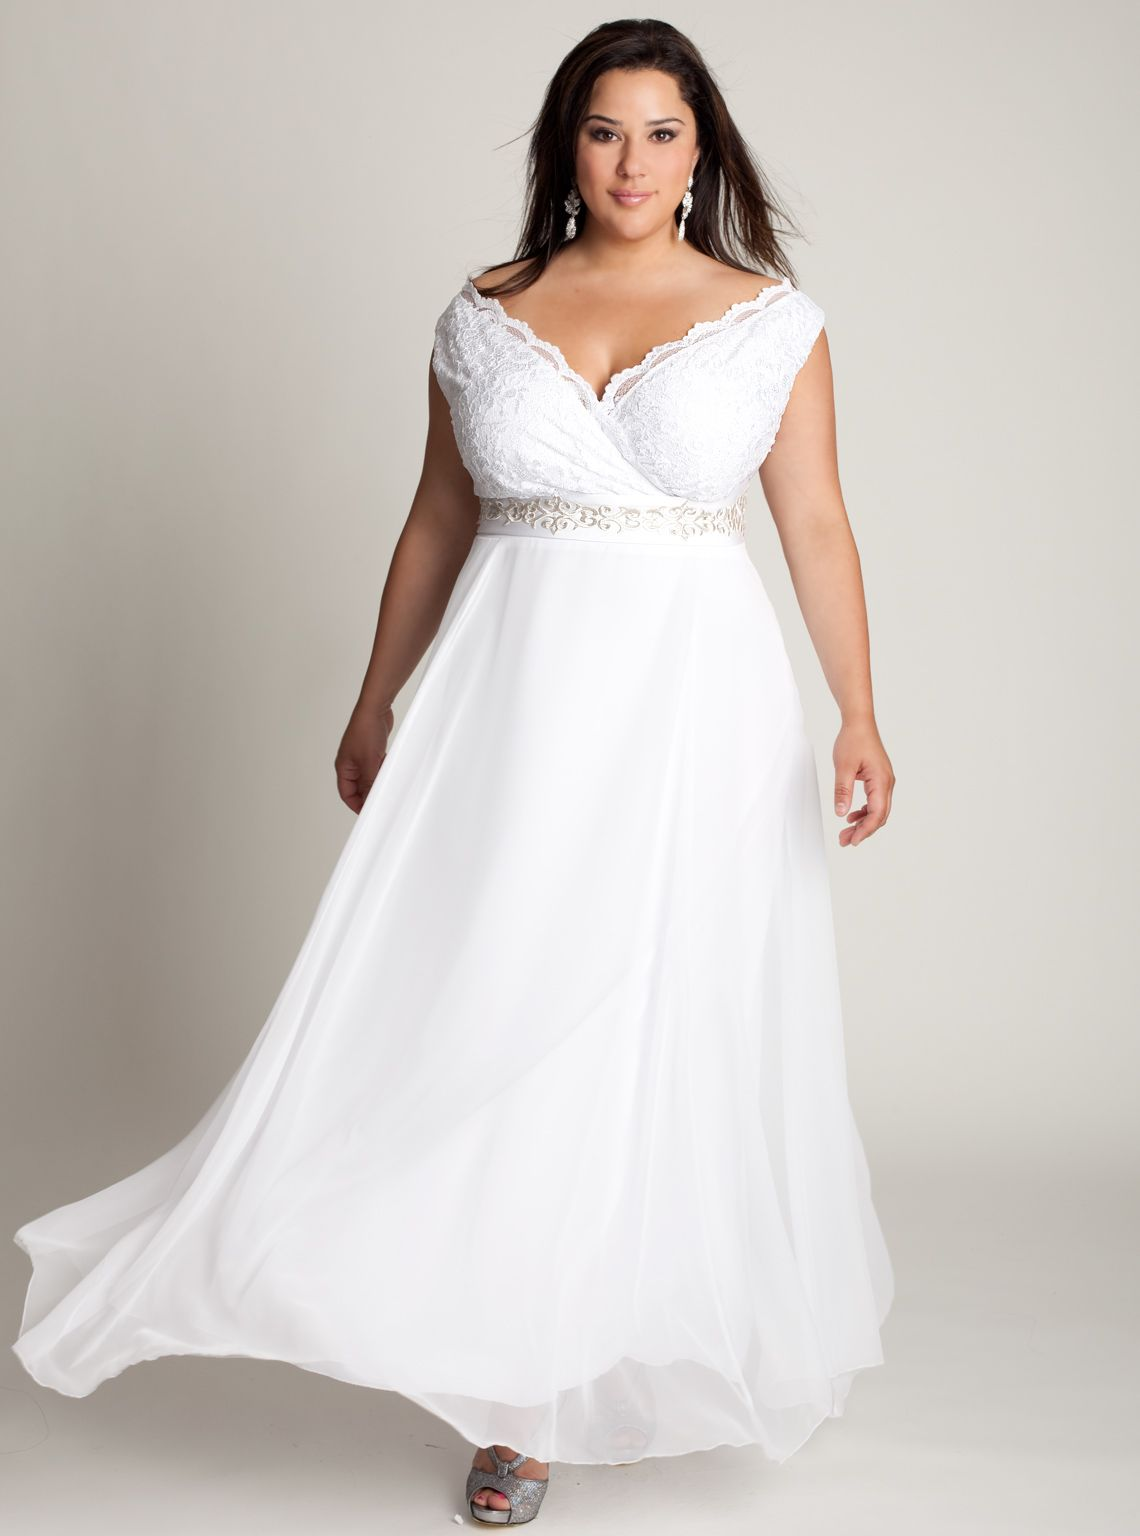 Summer outdoor casual wedding dresses for plus size plus sized summer outdoor casual wedding dresses for plus size plus sized fashion plus size fashion ombrellifo Gallery